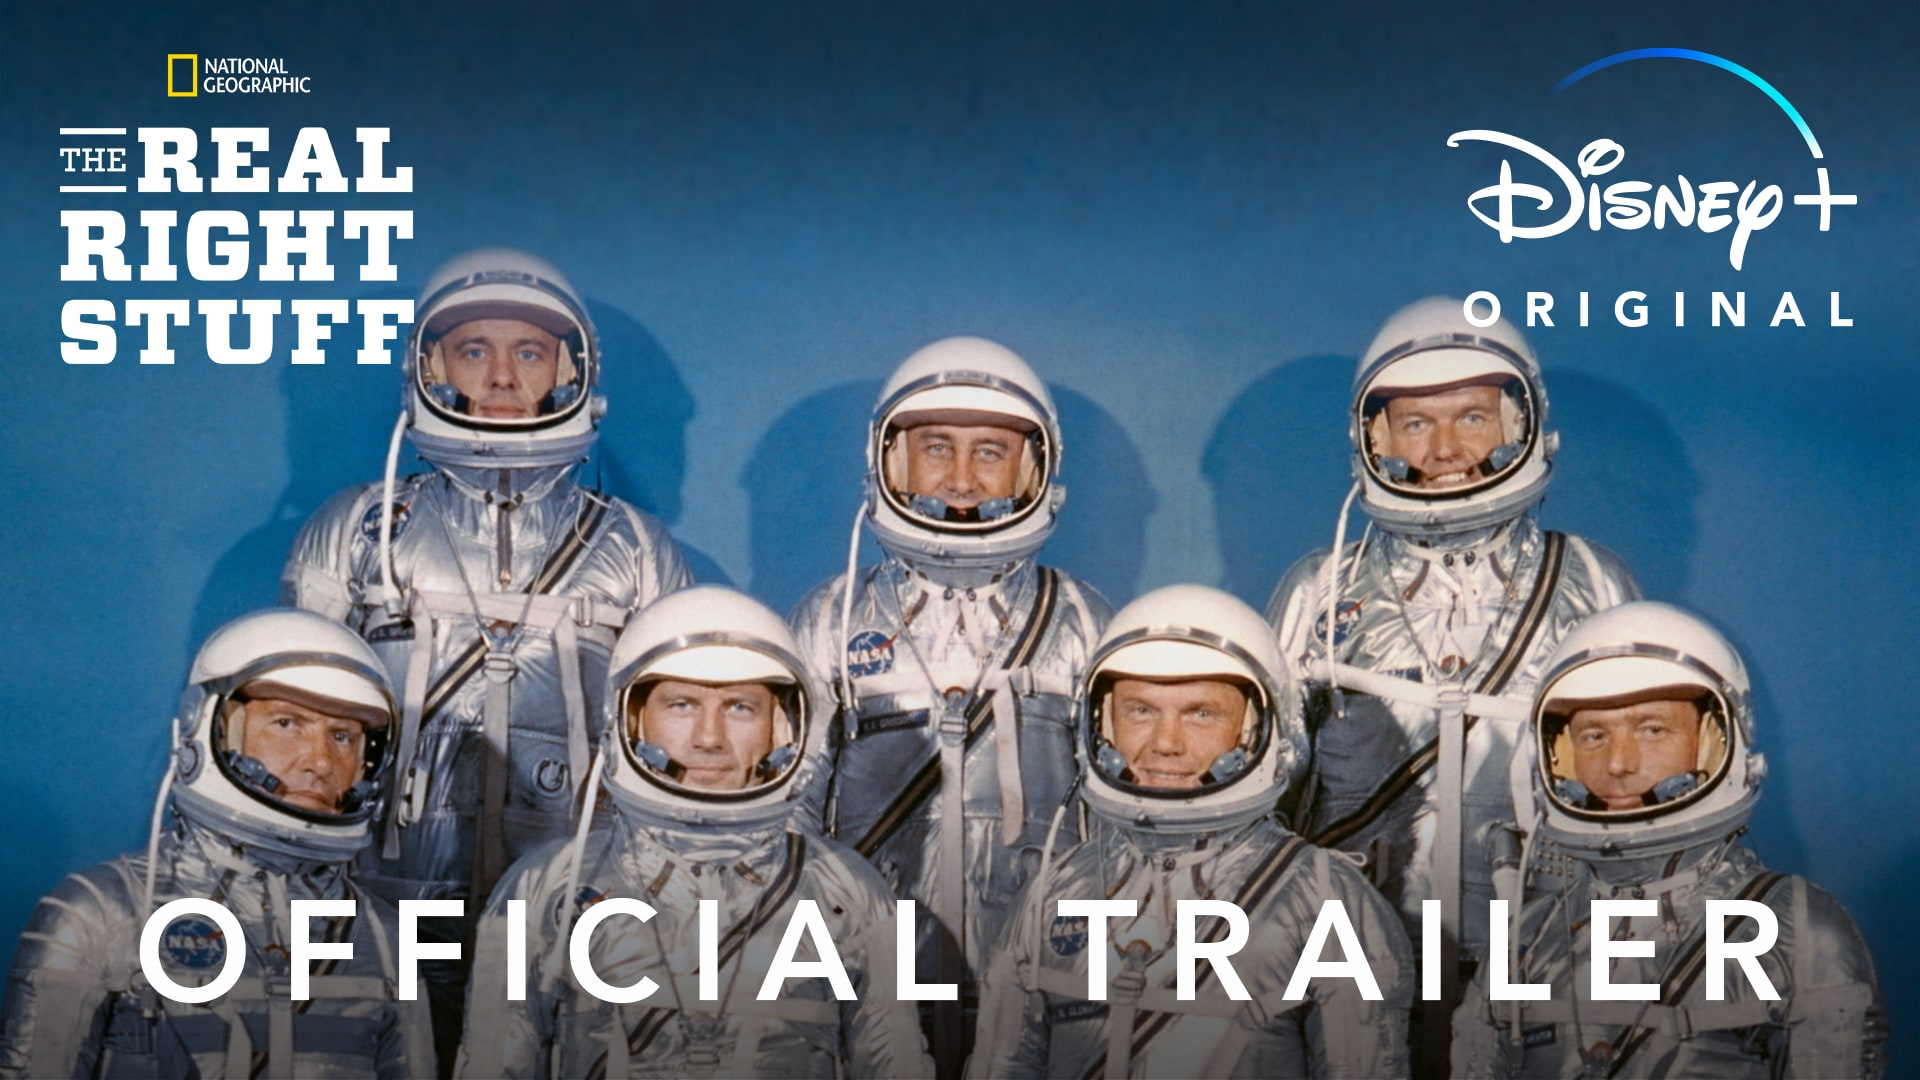 The Real Right Stuff | Official Trailer | Disney+